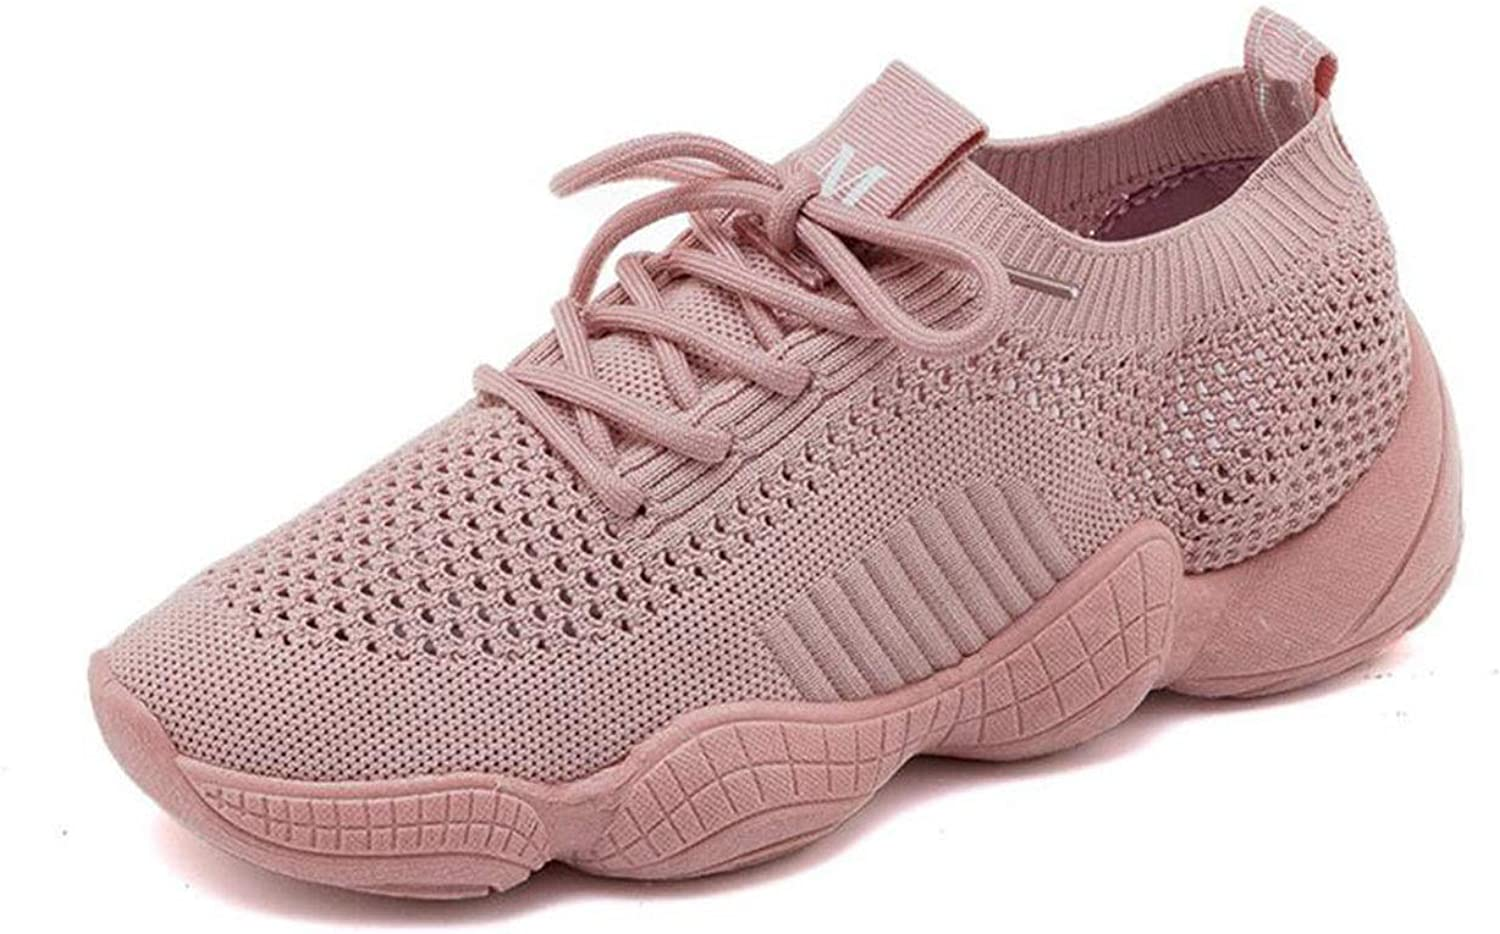 Women's Running shoes Walking shoes Lightweight Breathable Casual Sports shoes Fashion Sneakers Casual Knit Workout Sneakers (color   Pink, Size   35)